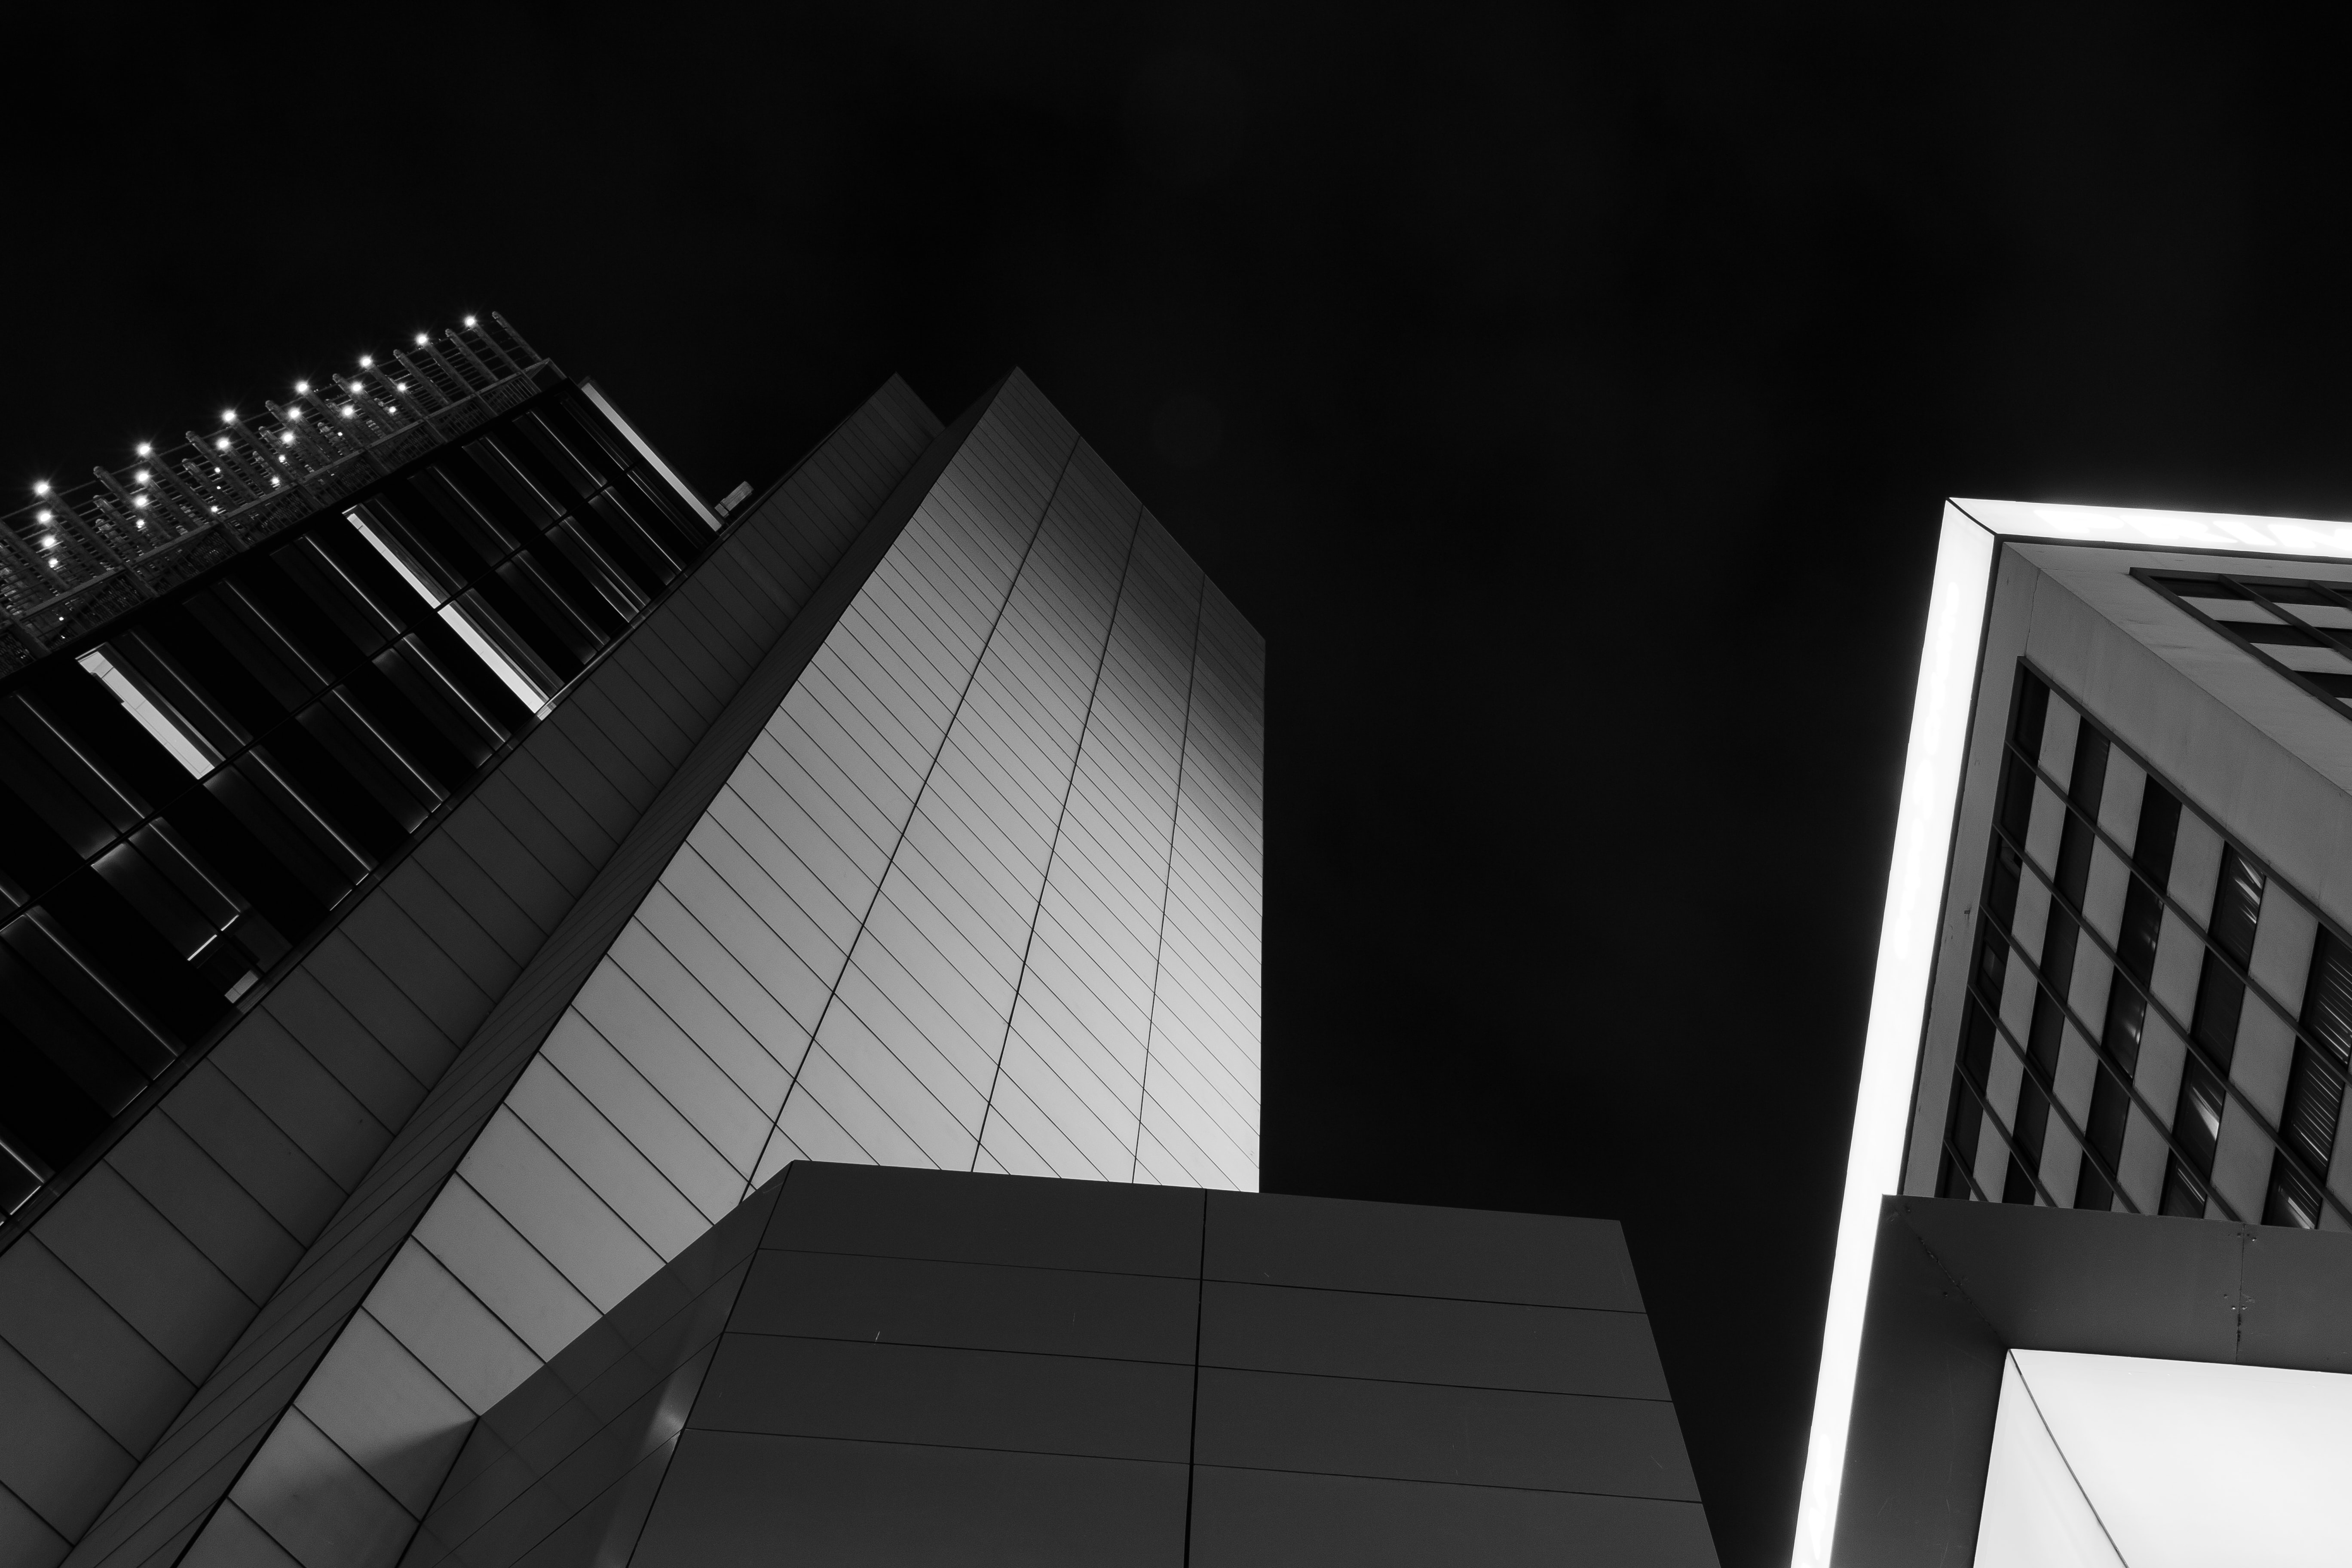 low angle photography of high-rise curtained wall building grayscale photo